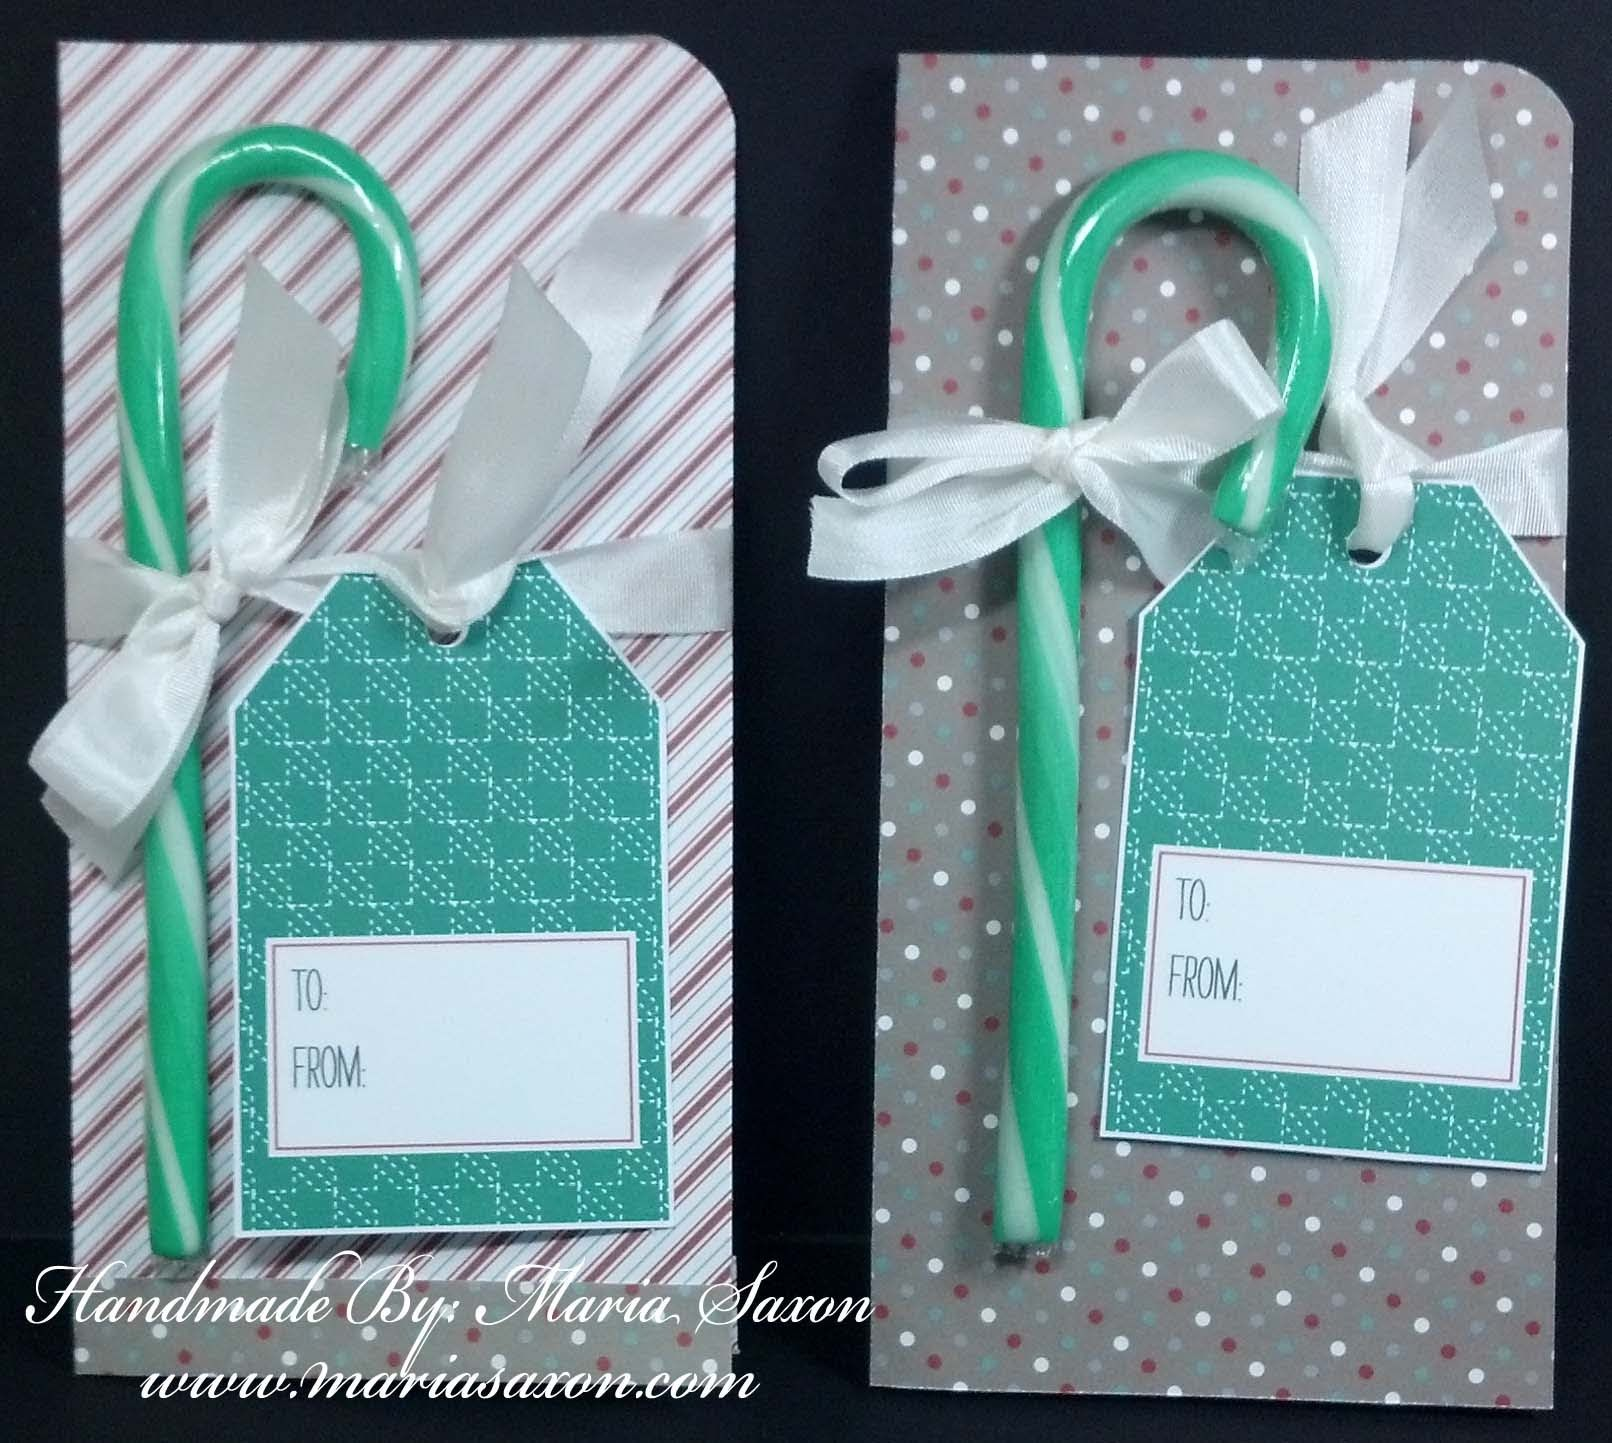 CTMH Basic Money Card Holder - Close To My Heart using Sparkle and Shine Paper Packet and holiday gift tag. Handmade by Maria Saxon www.mariasaxon.com